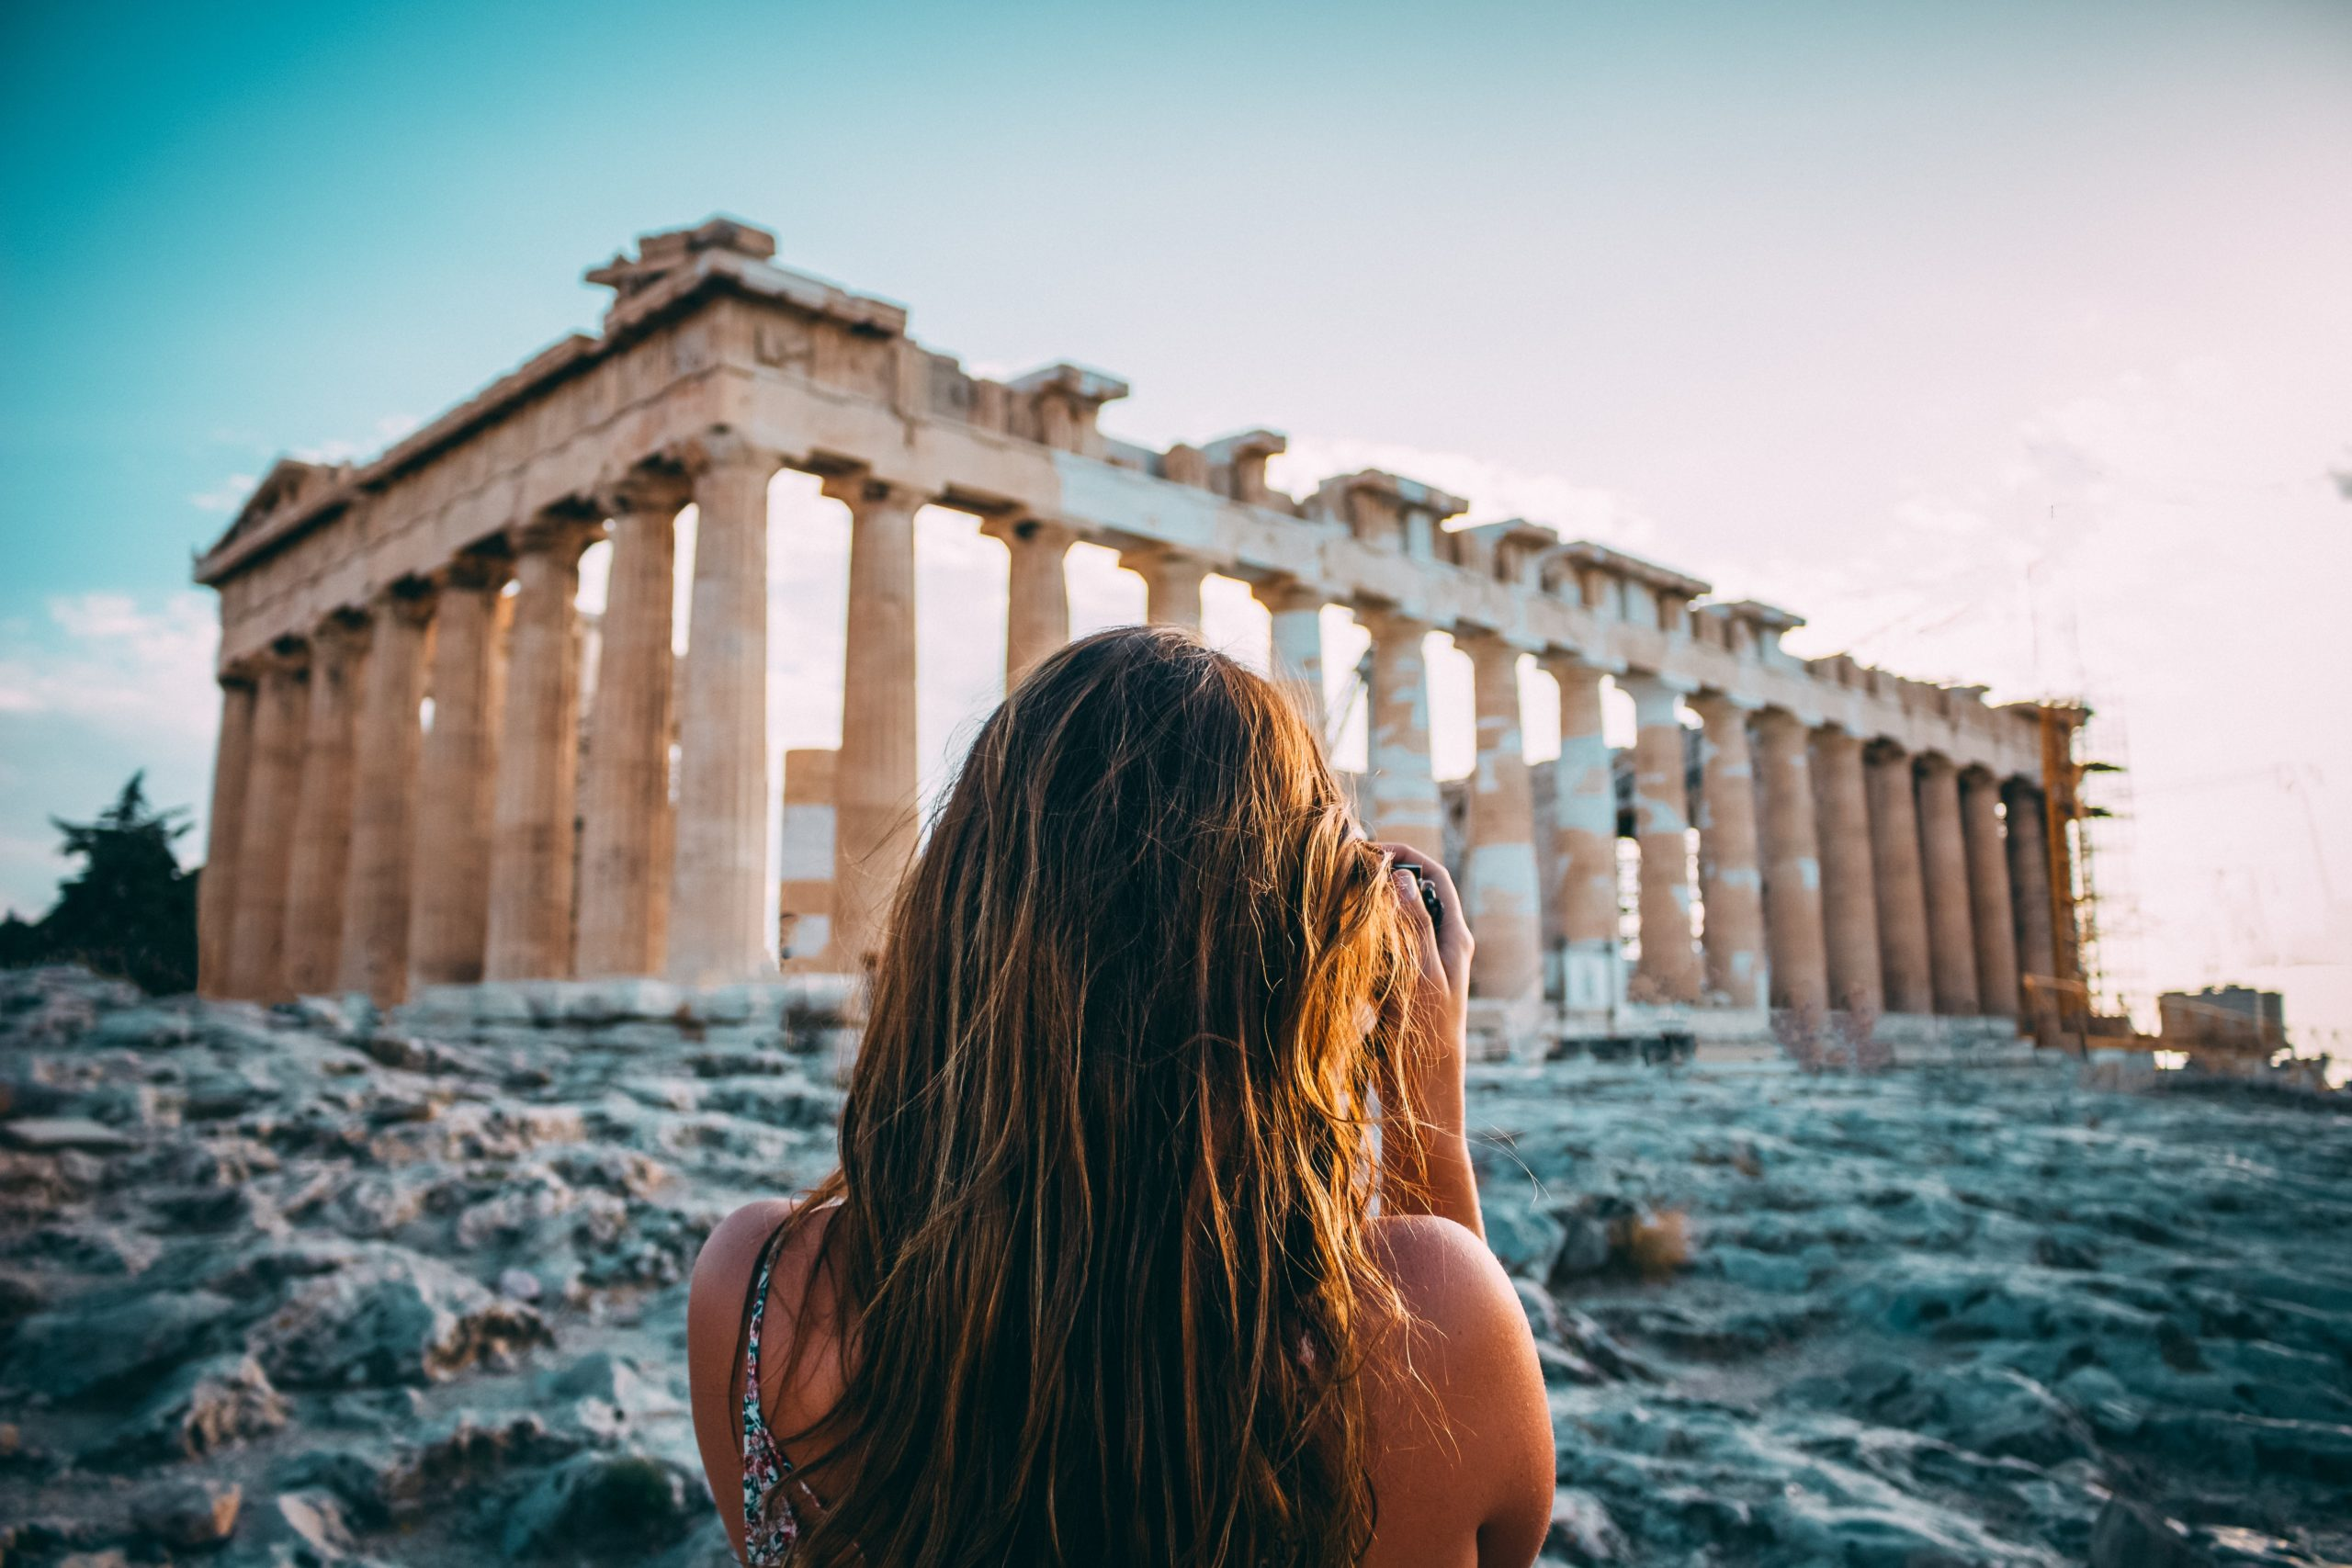 Backside of a woman with brown hair who is taking a picture of the temple of Parthenon